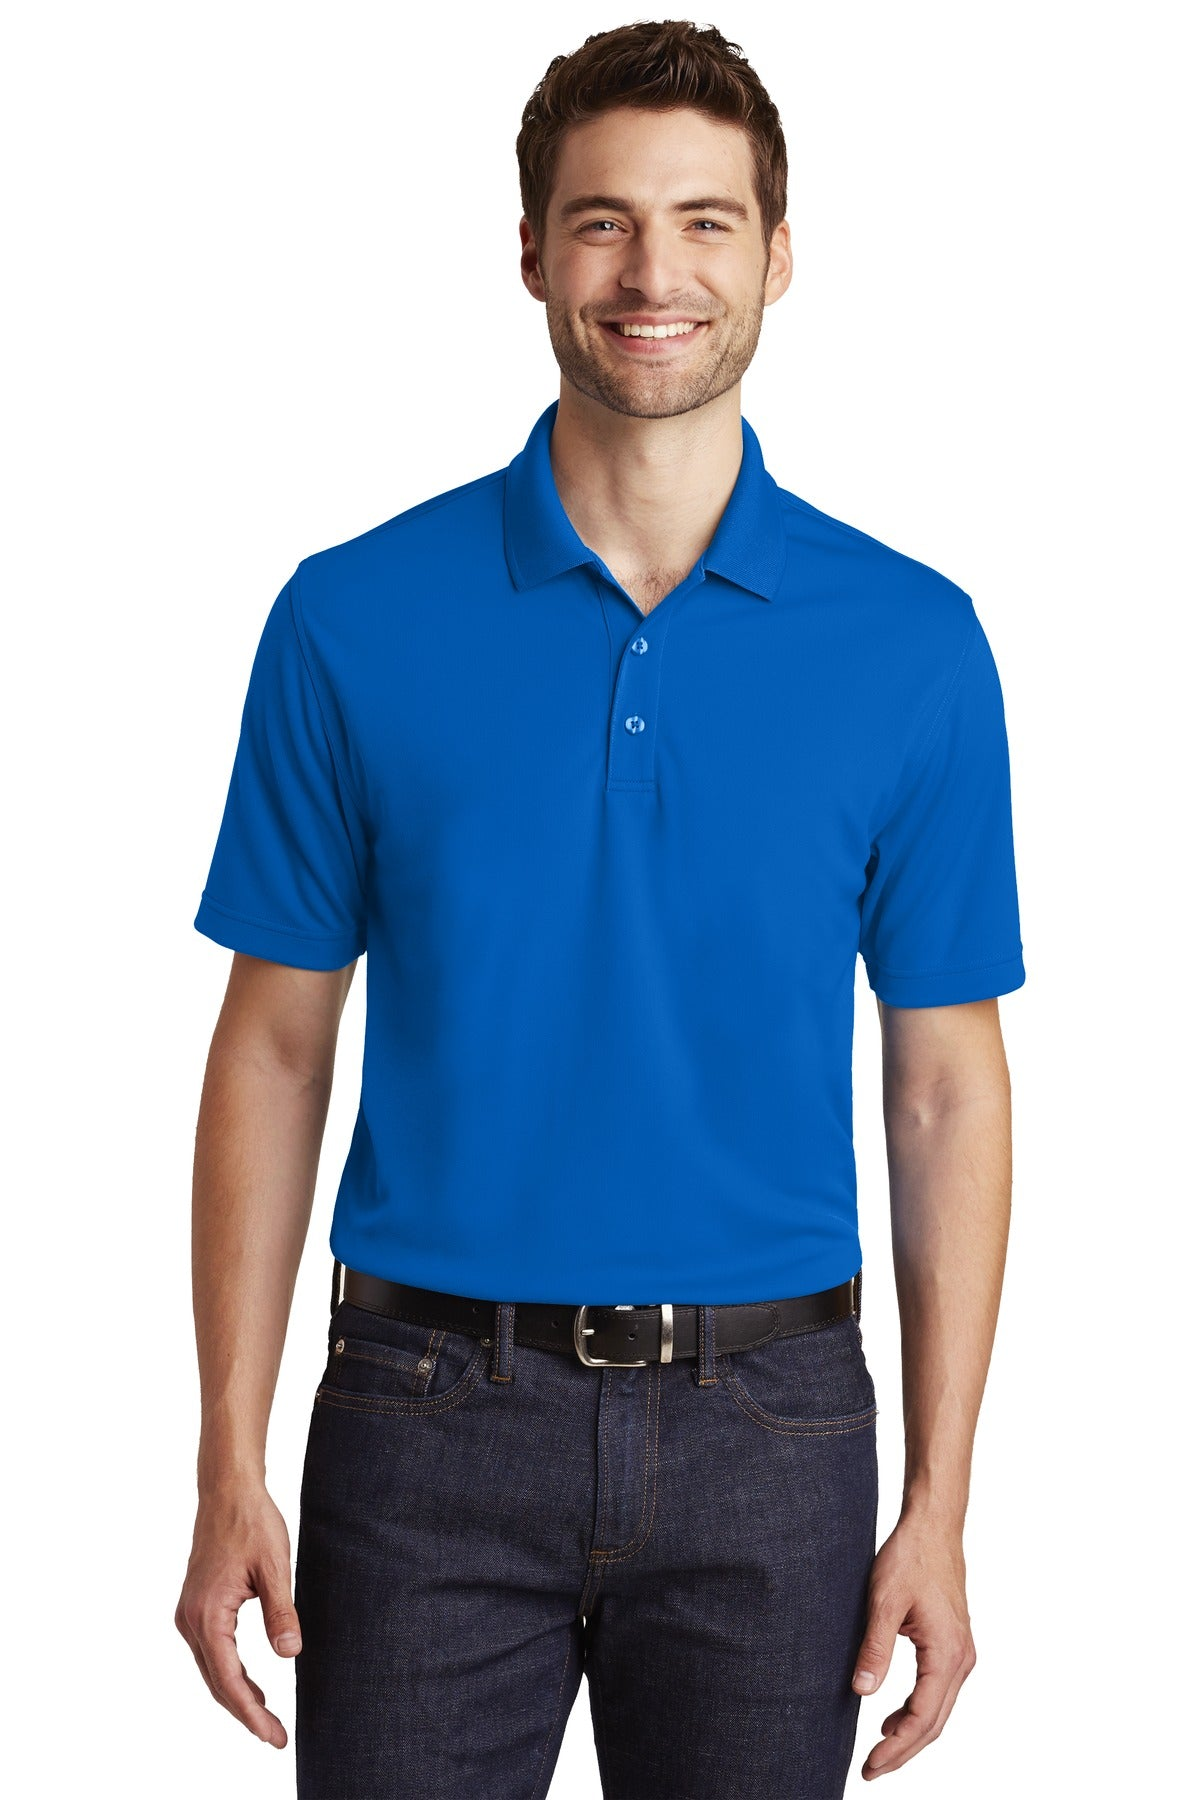 Light Blue Port Authority Heavyweight Cotton Pique Polo.